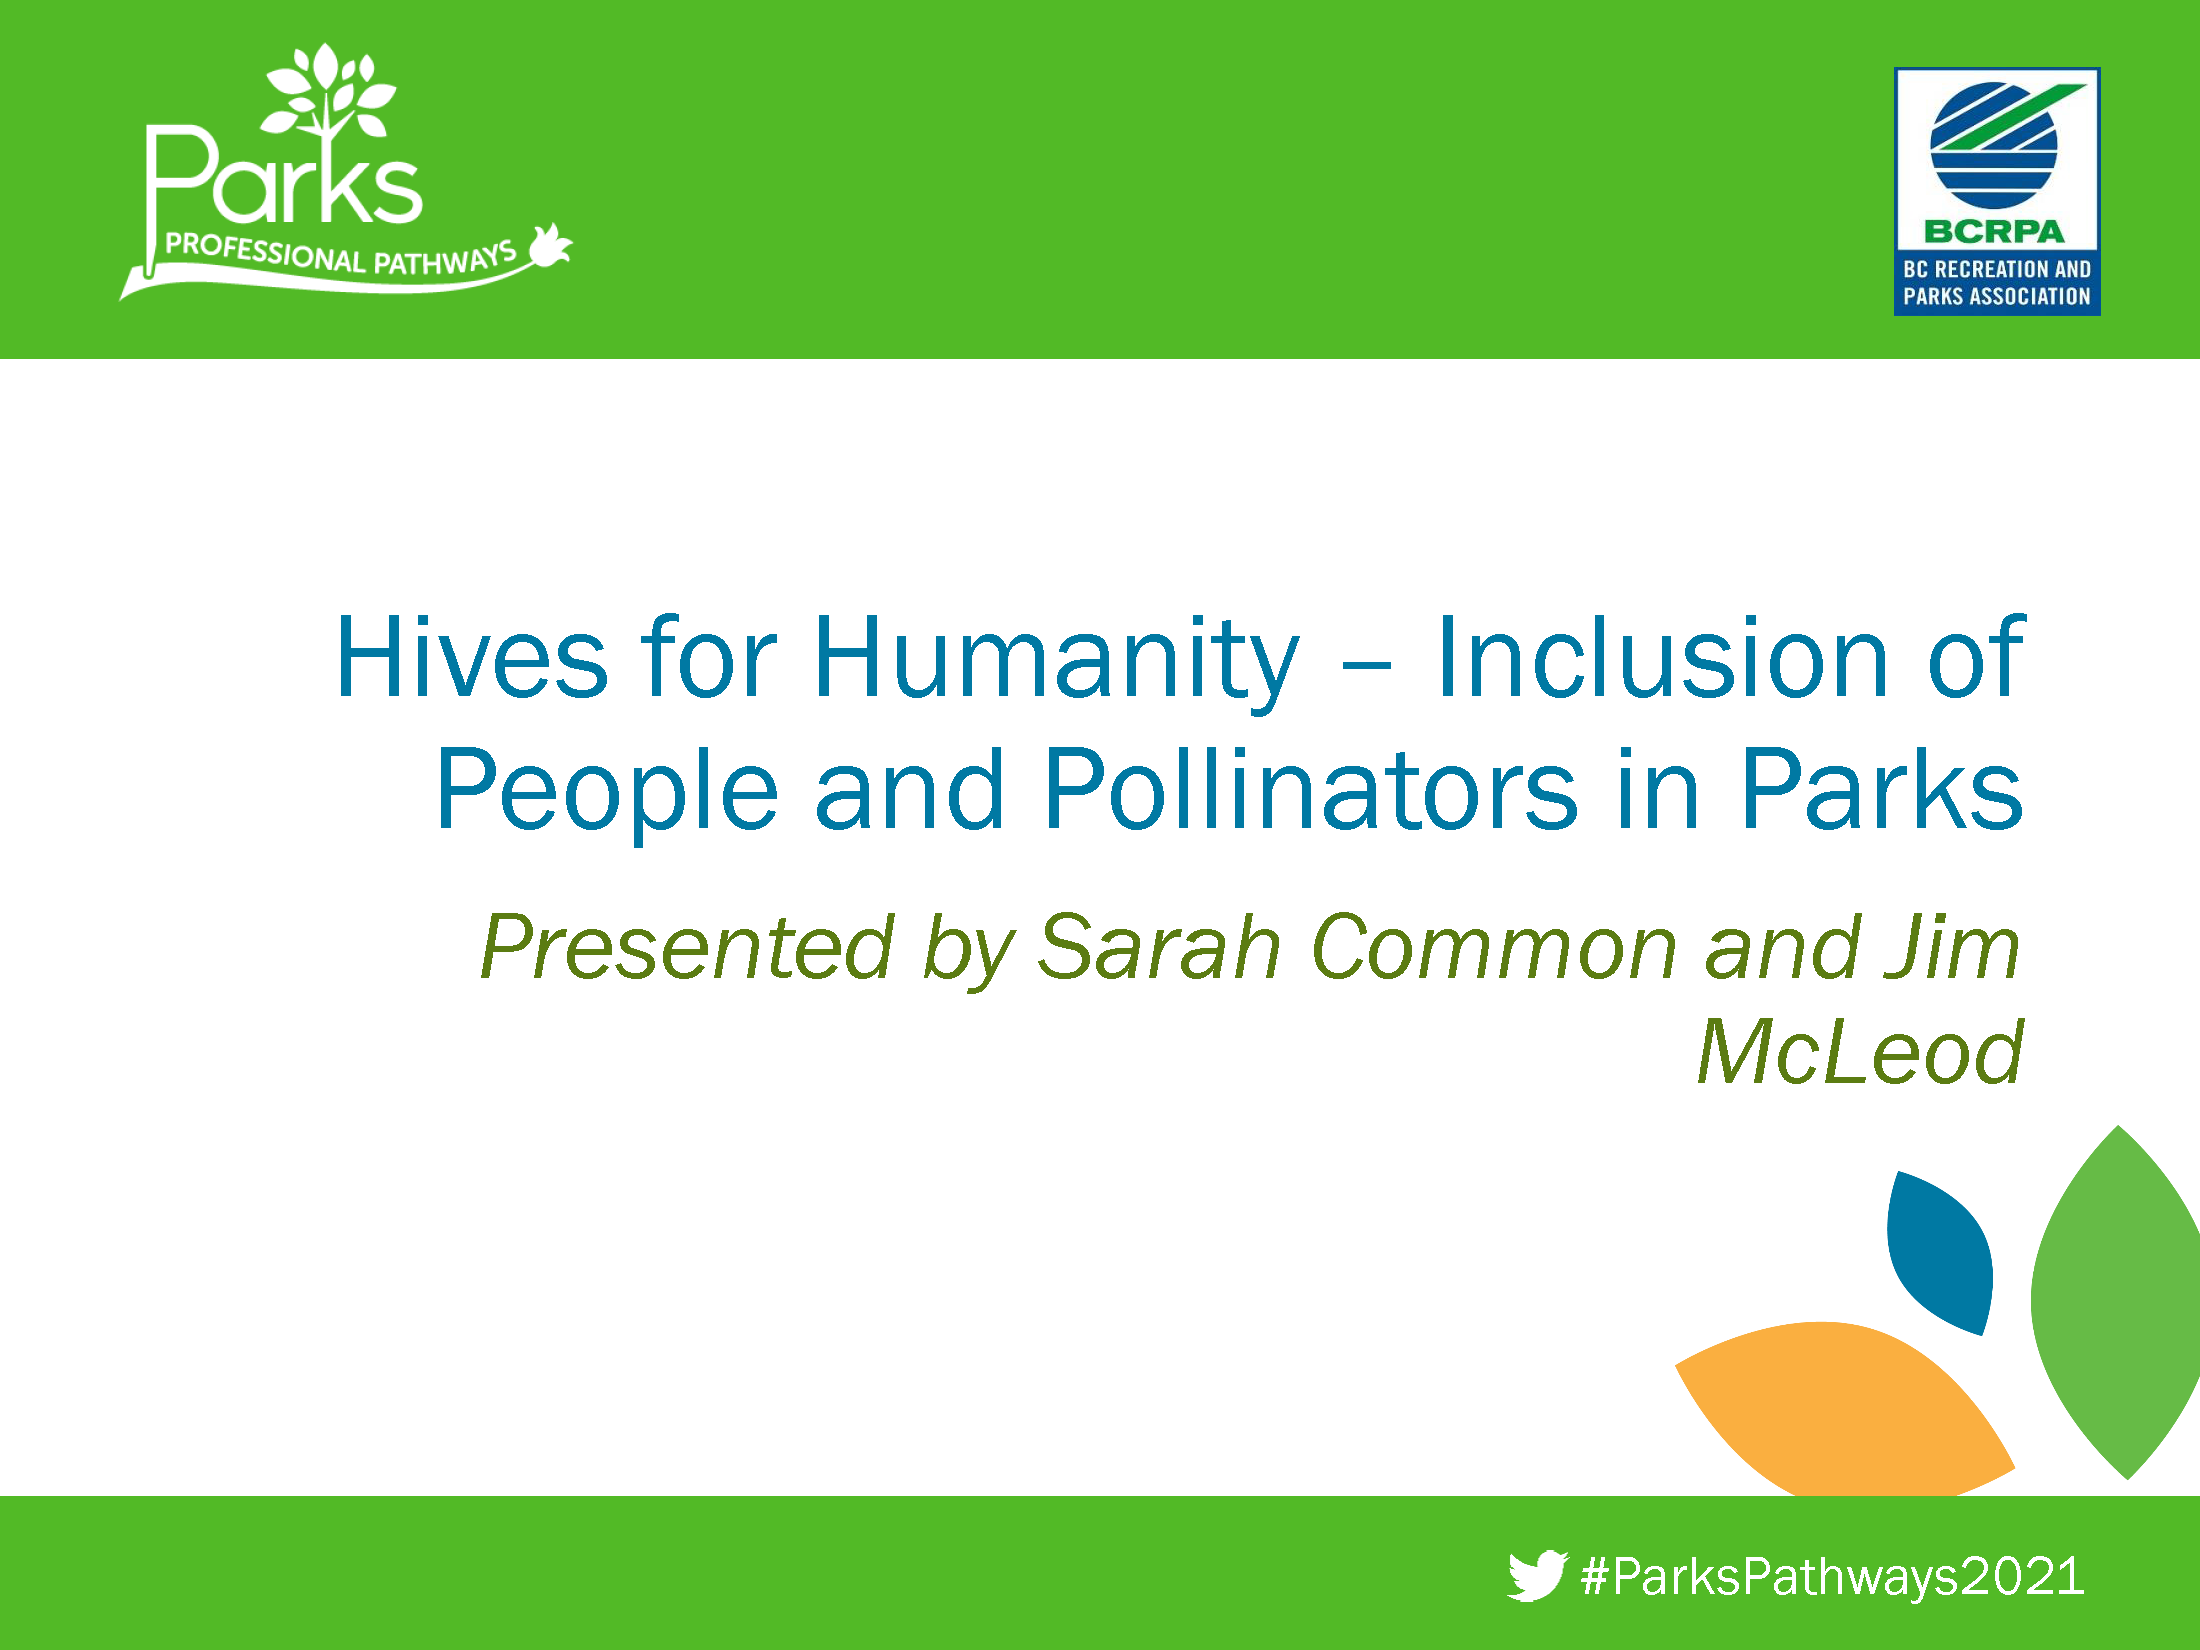 Hives for Humanity - Inclusion of People and Pollinators in Parks